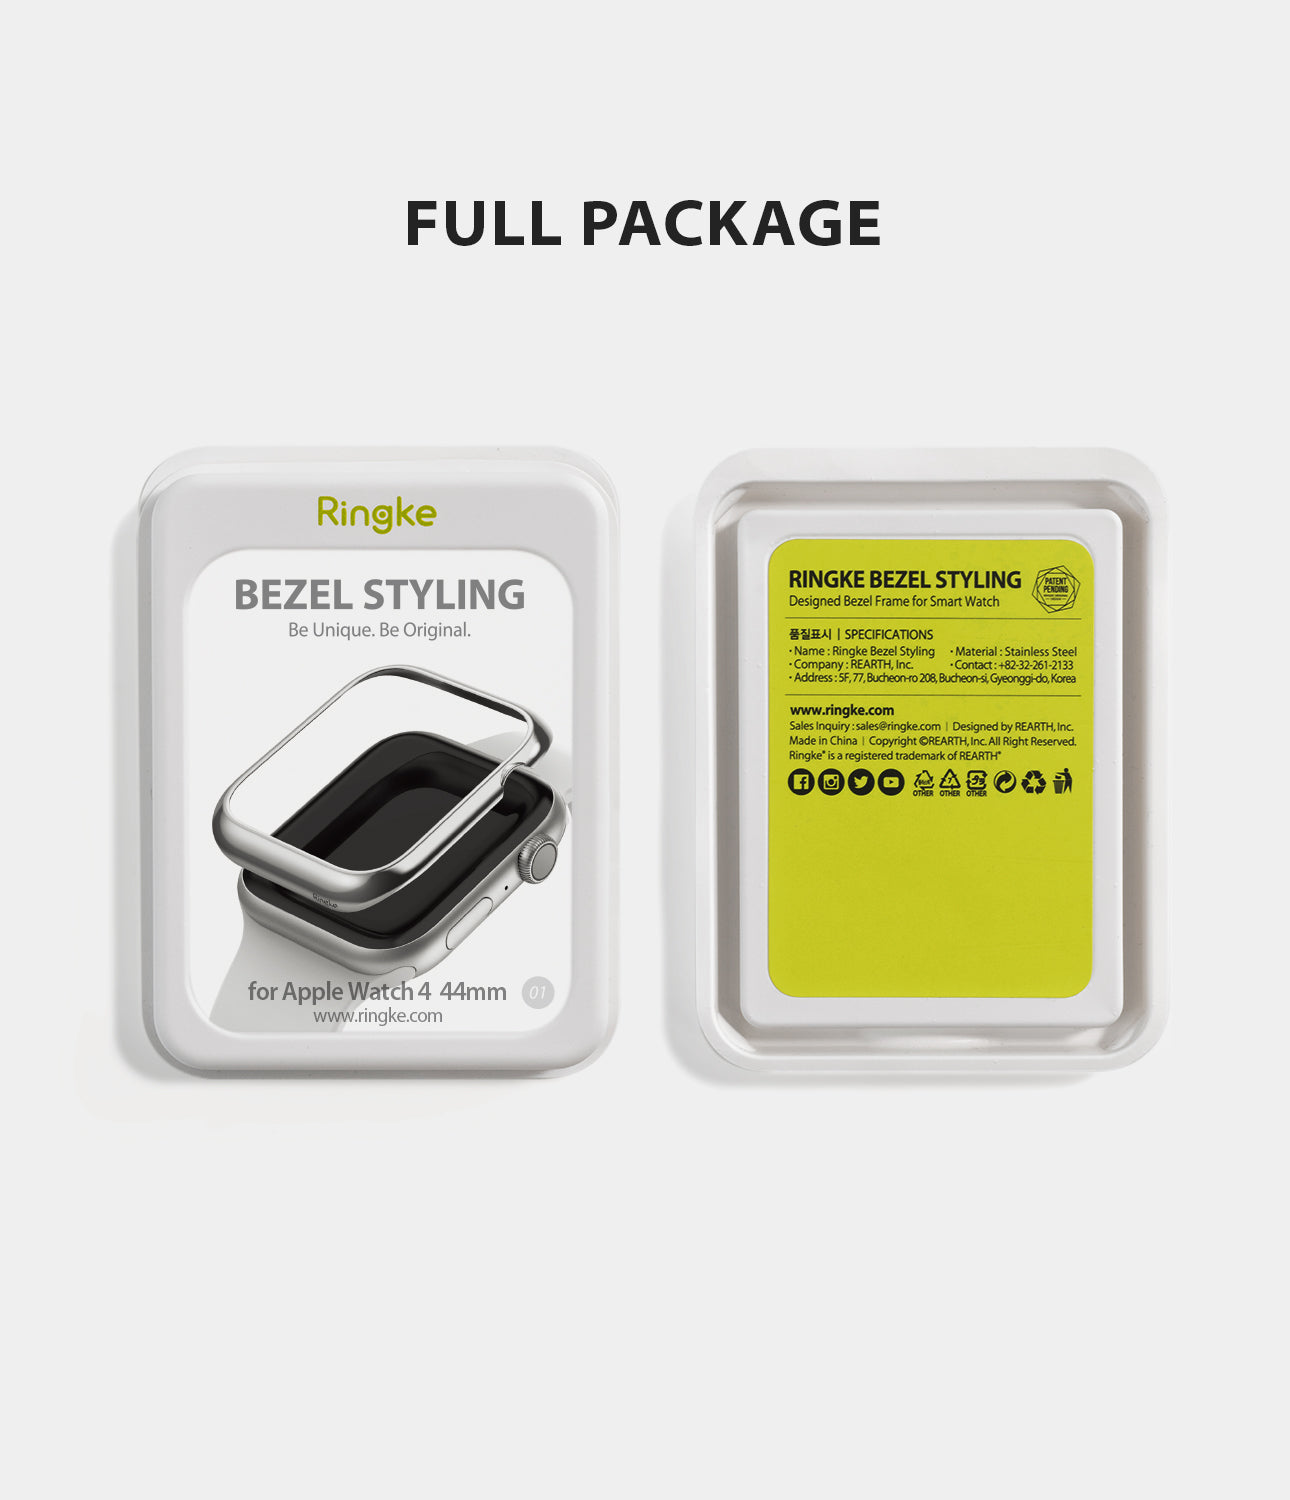 apple watch 4 44mm case ringke bezel styling stainless steel frame cover 44-01 full package